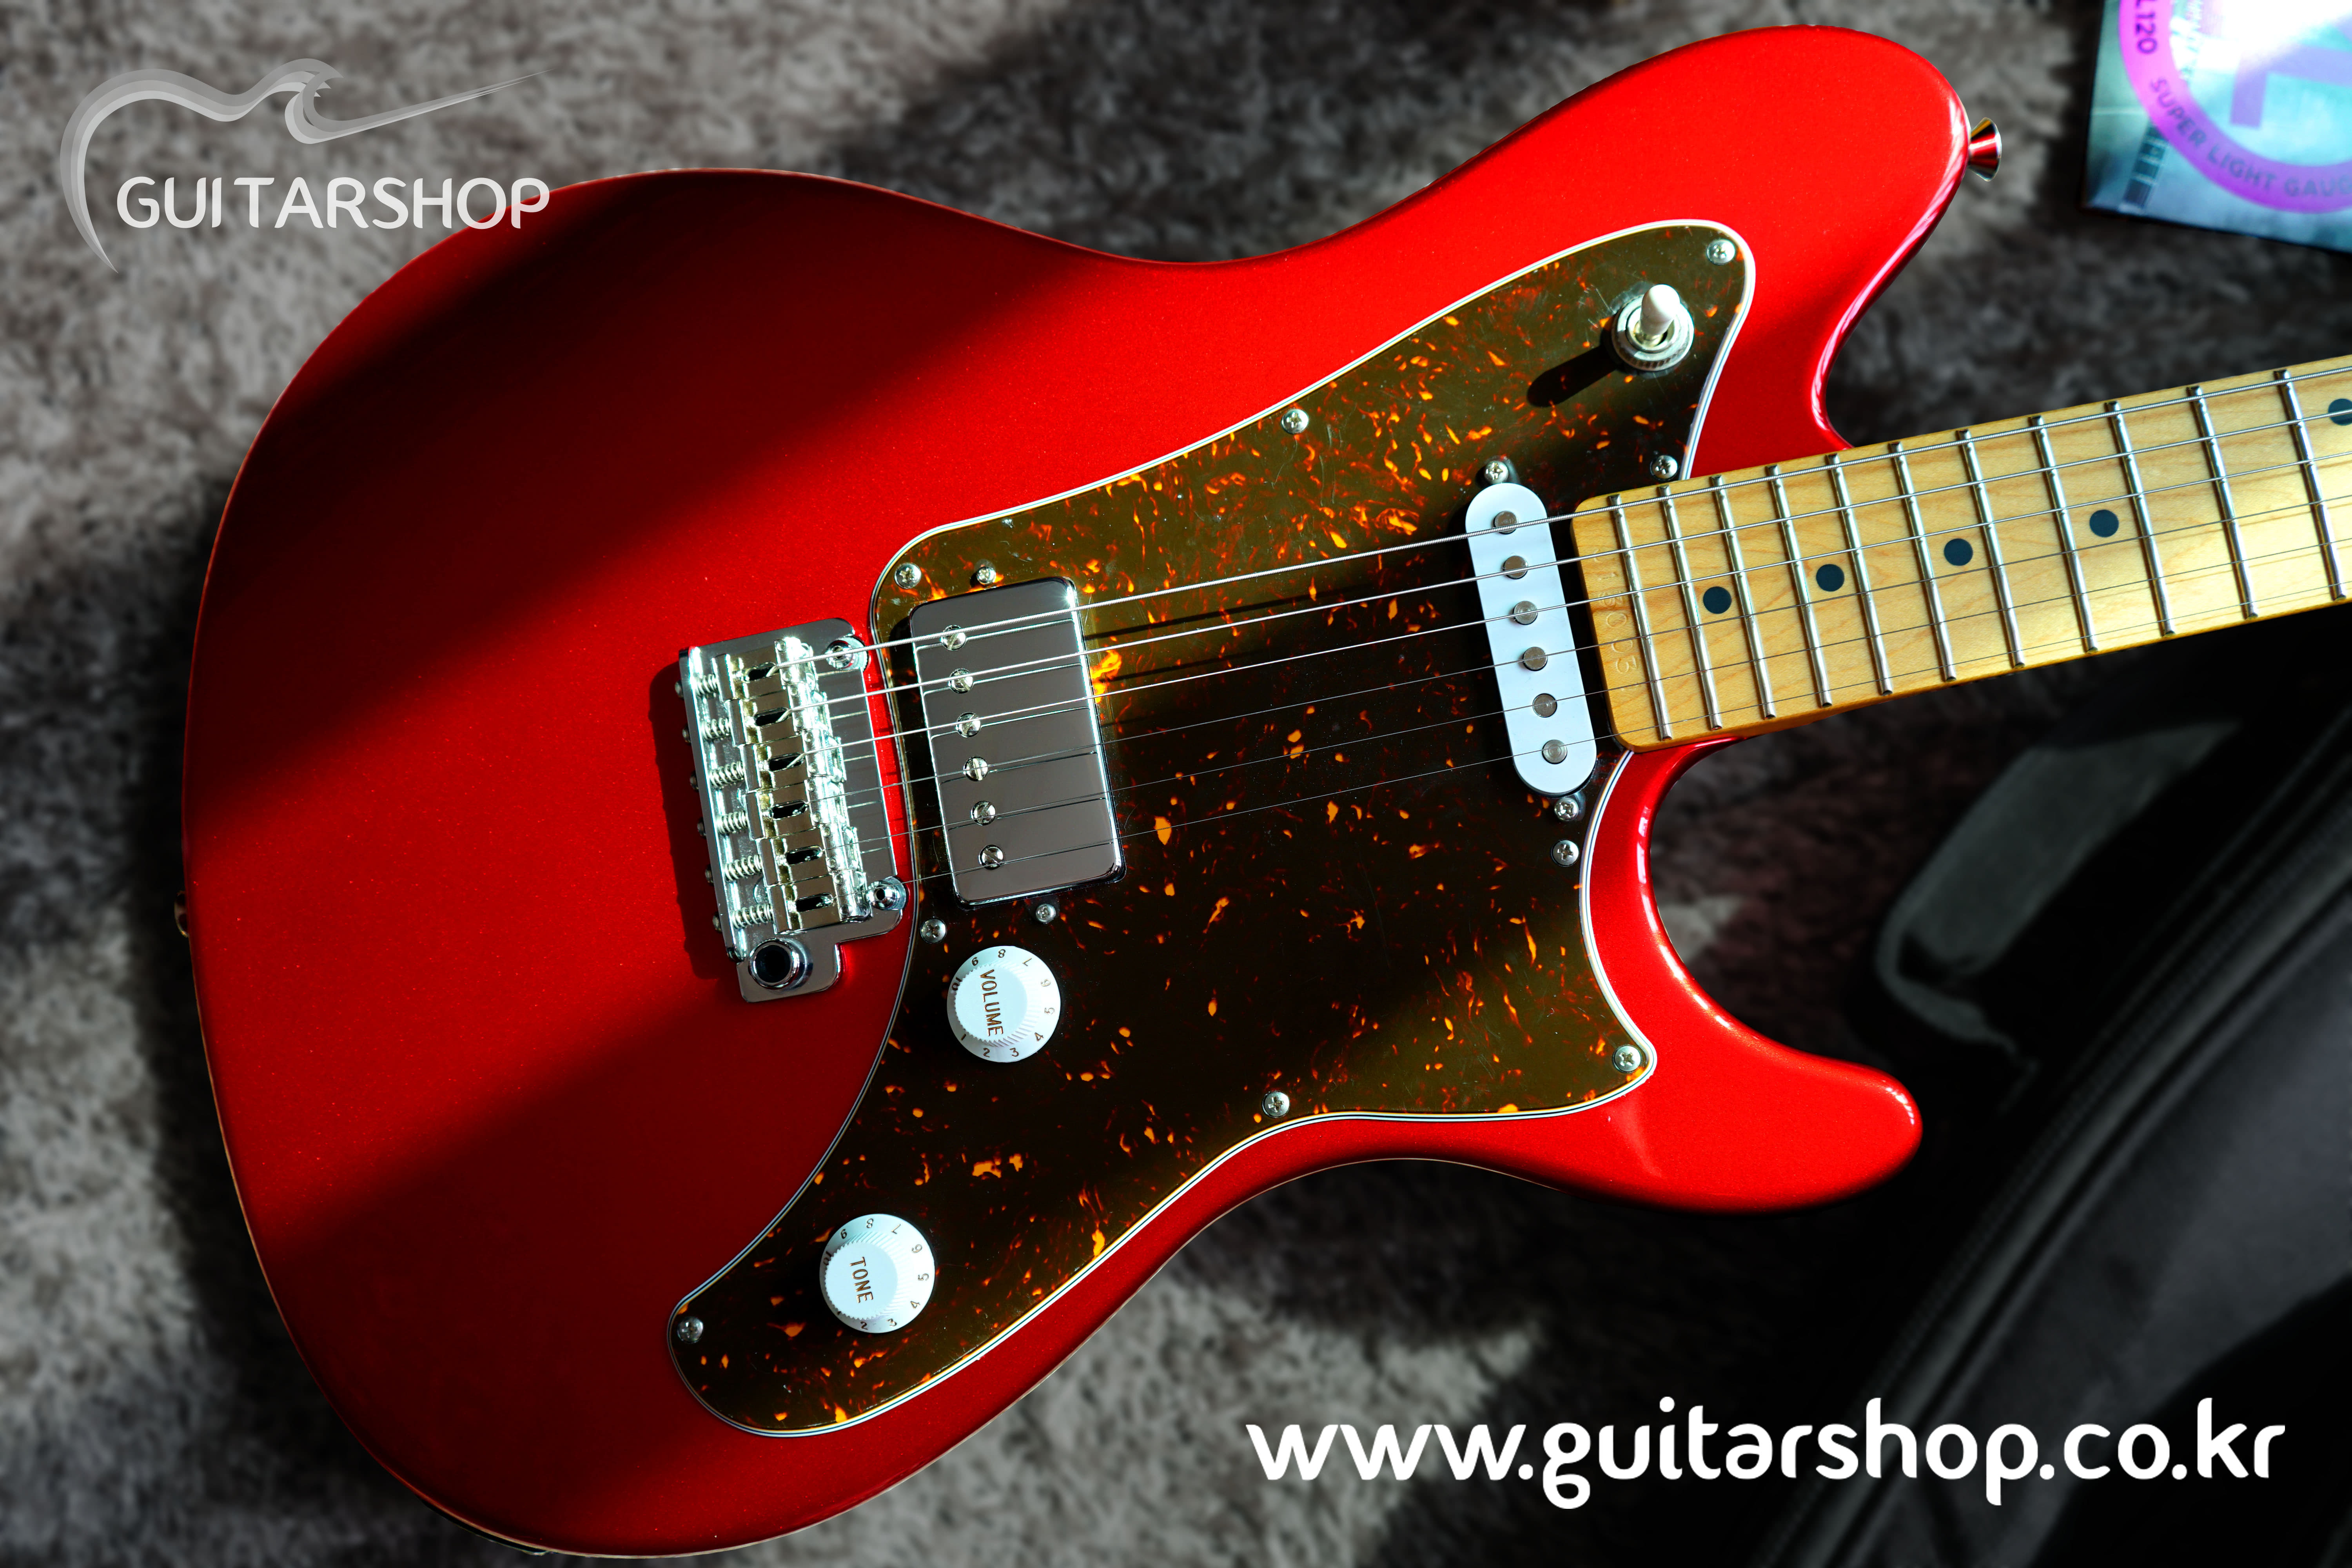 SUGI RMG GUITAR (Candy Apple Red Color)